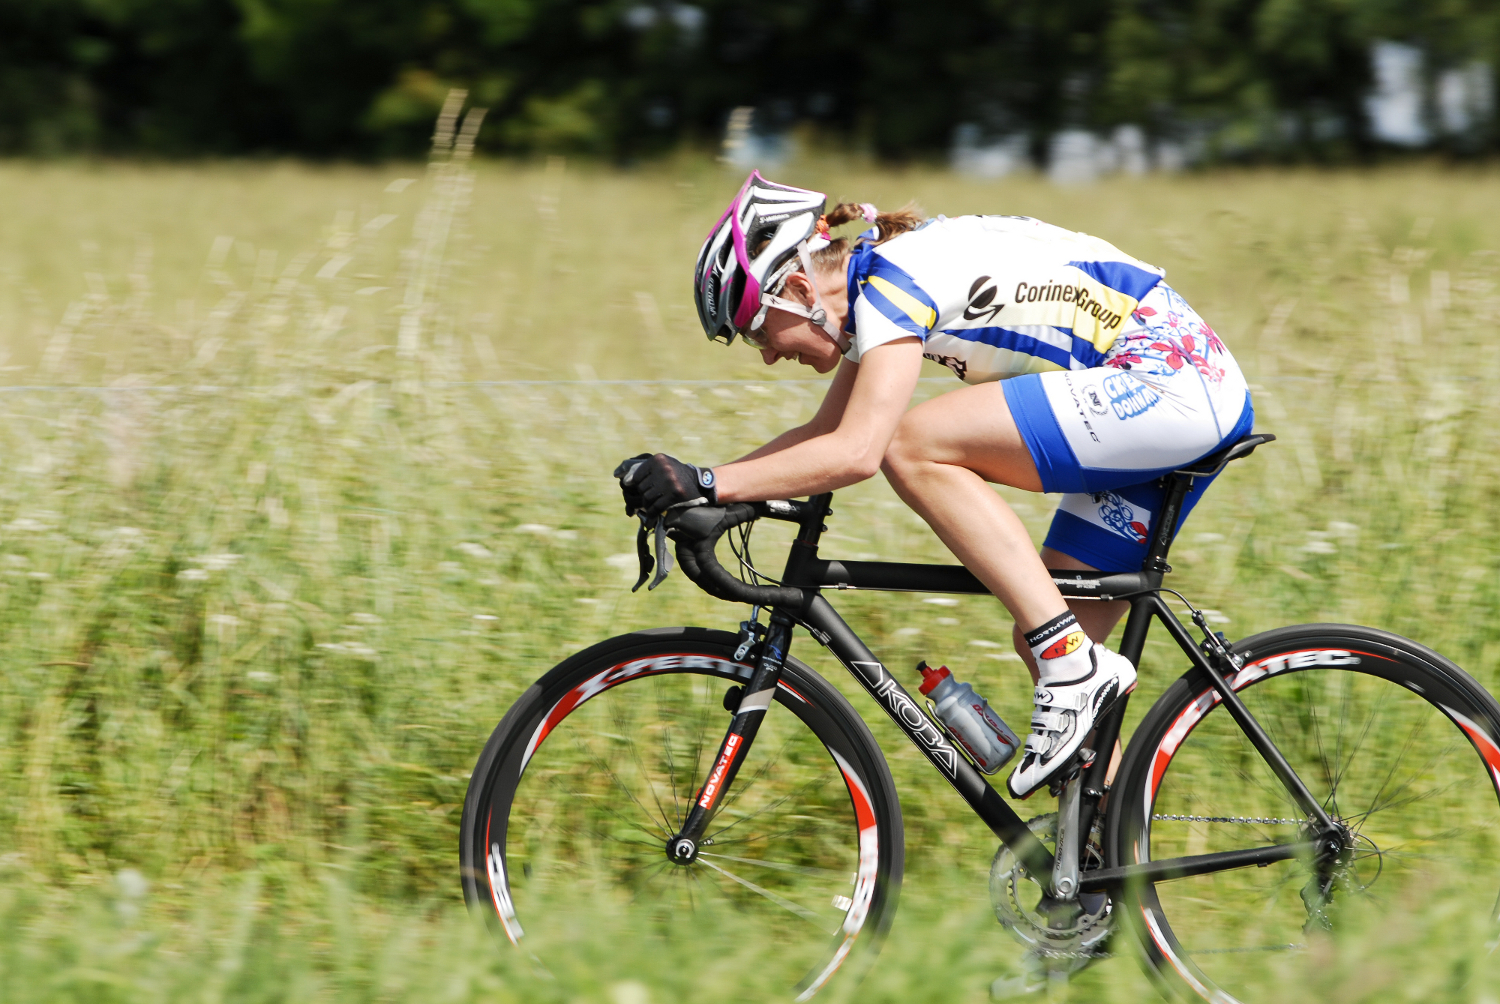 janka-stevkova-cycling-road-race.jpg